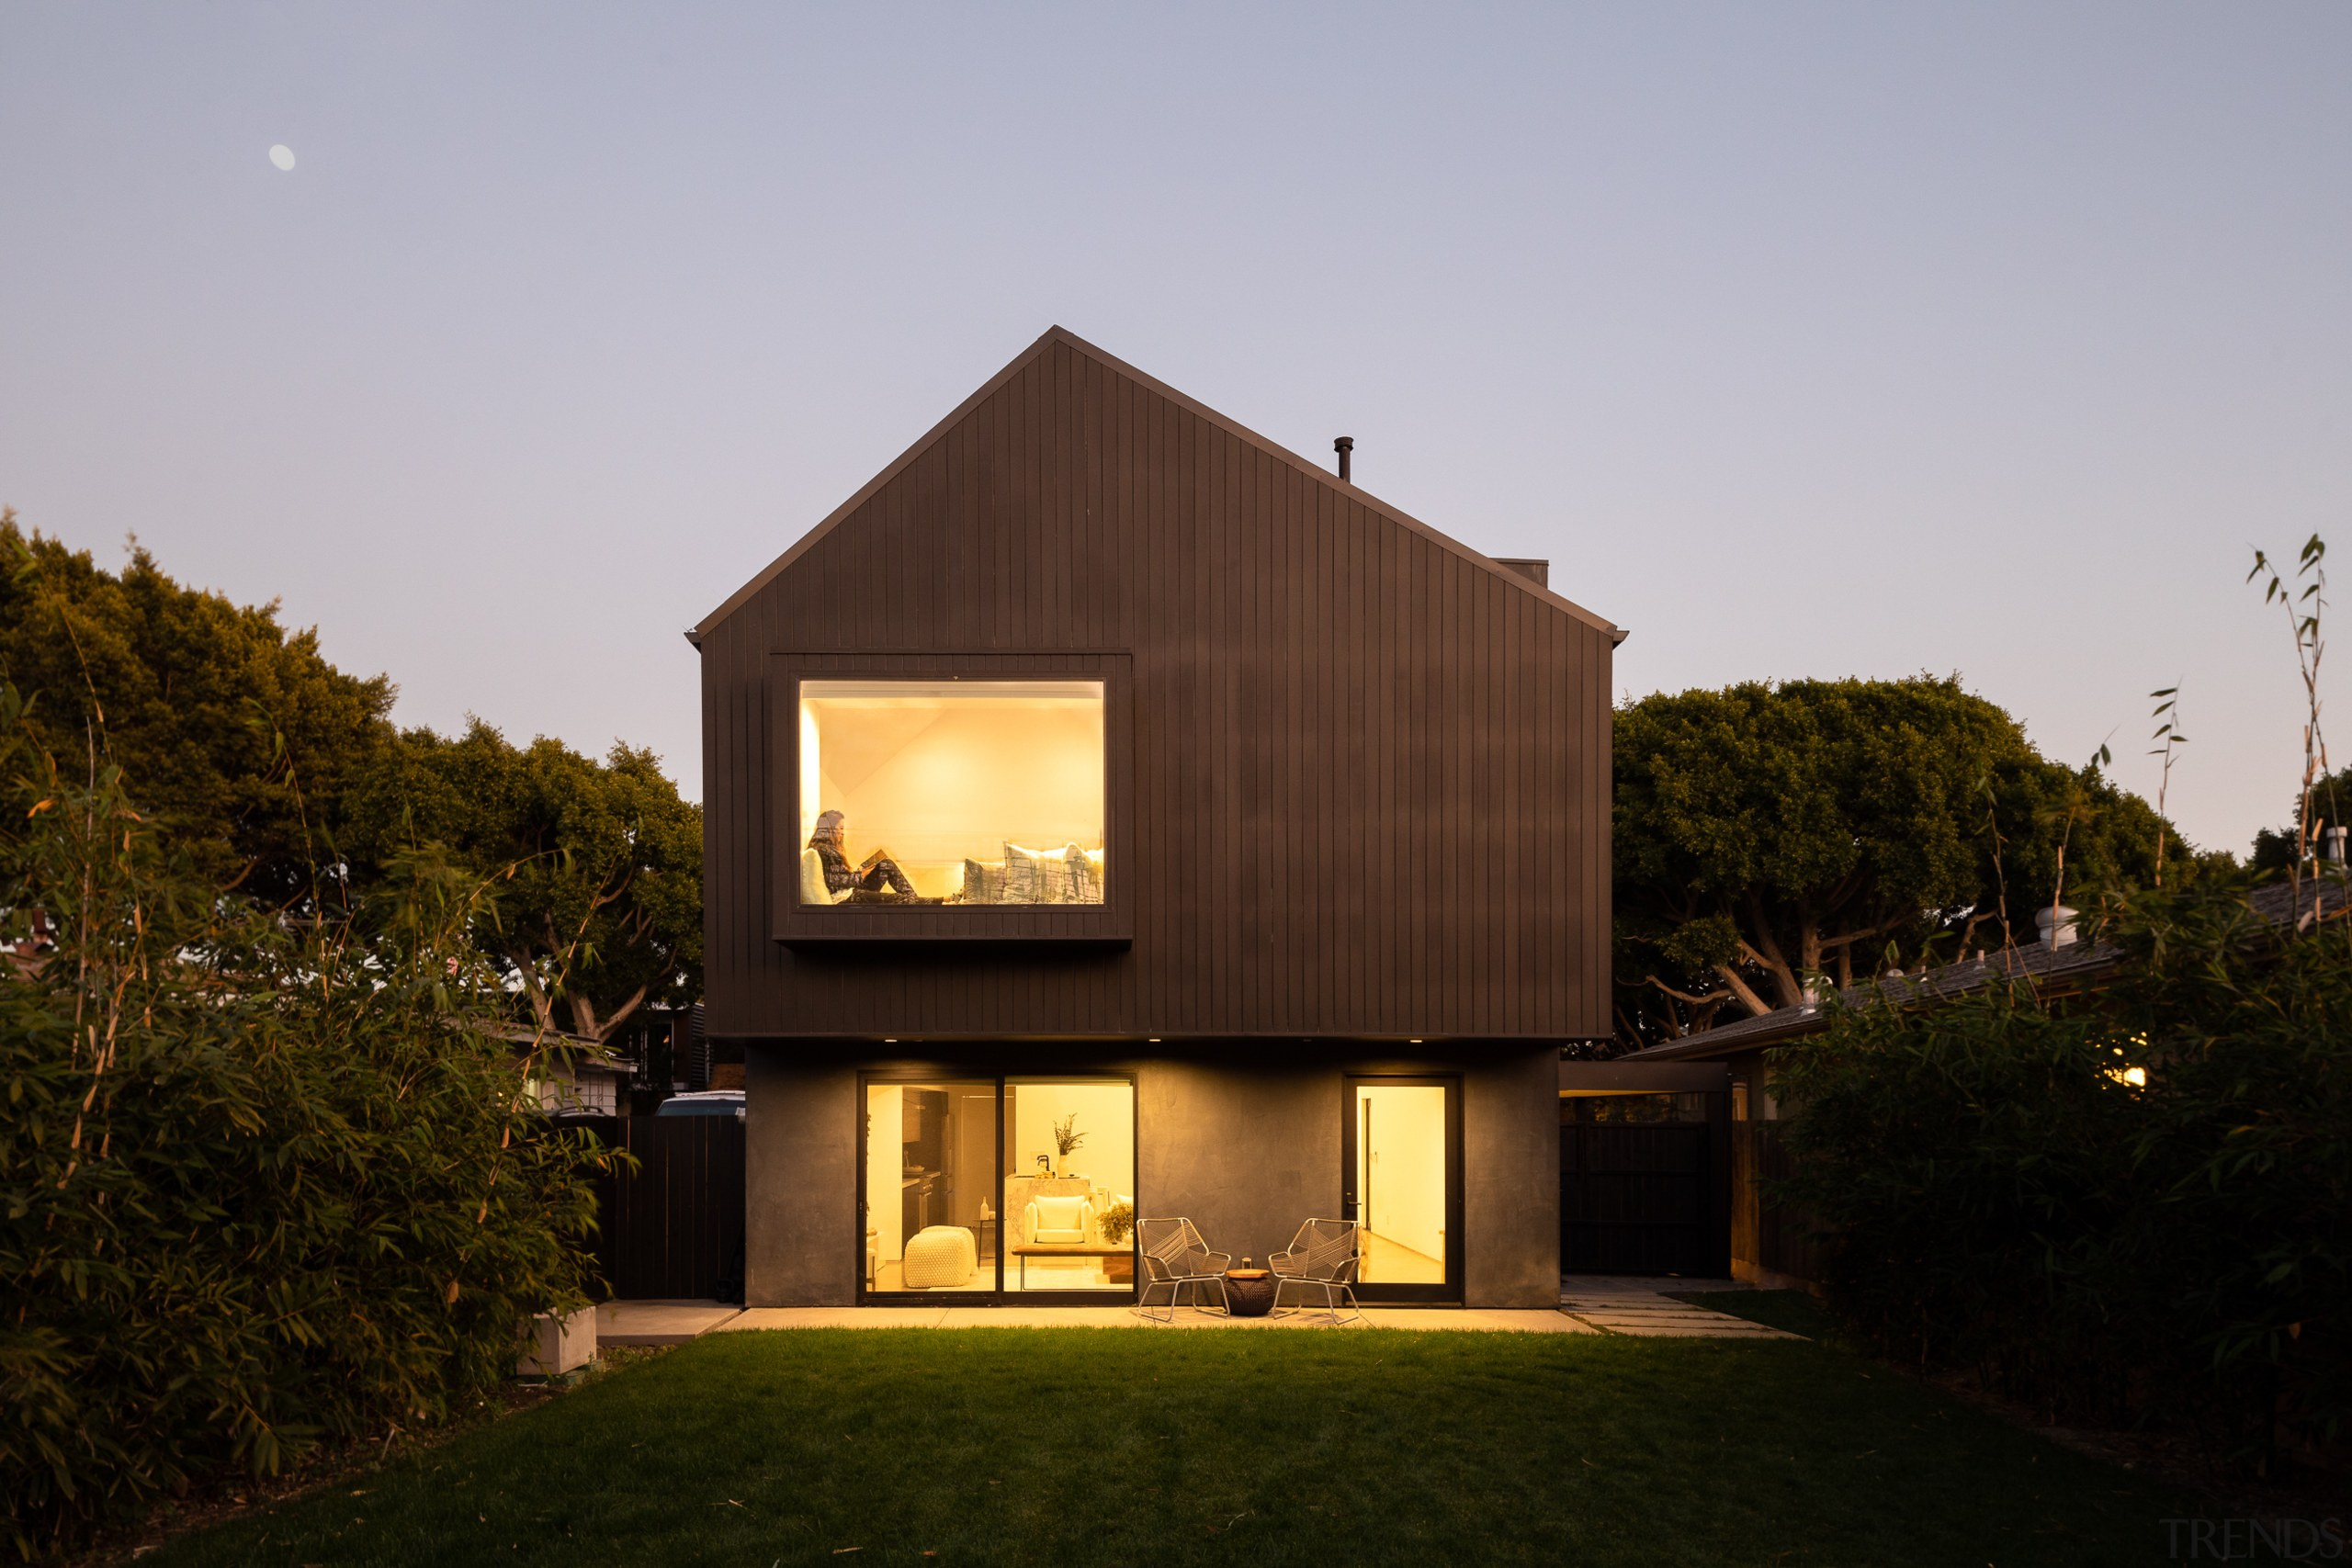 The floating black volume is defined by its